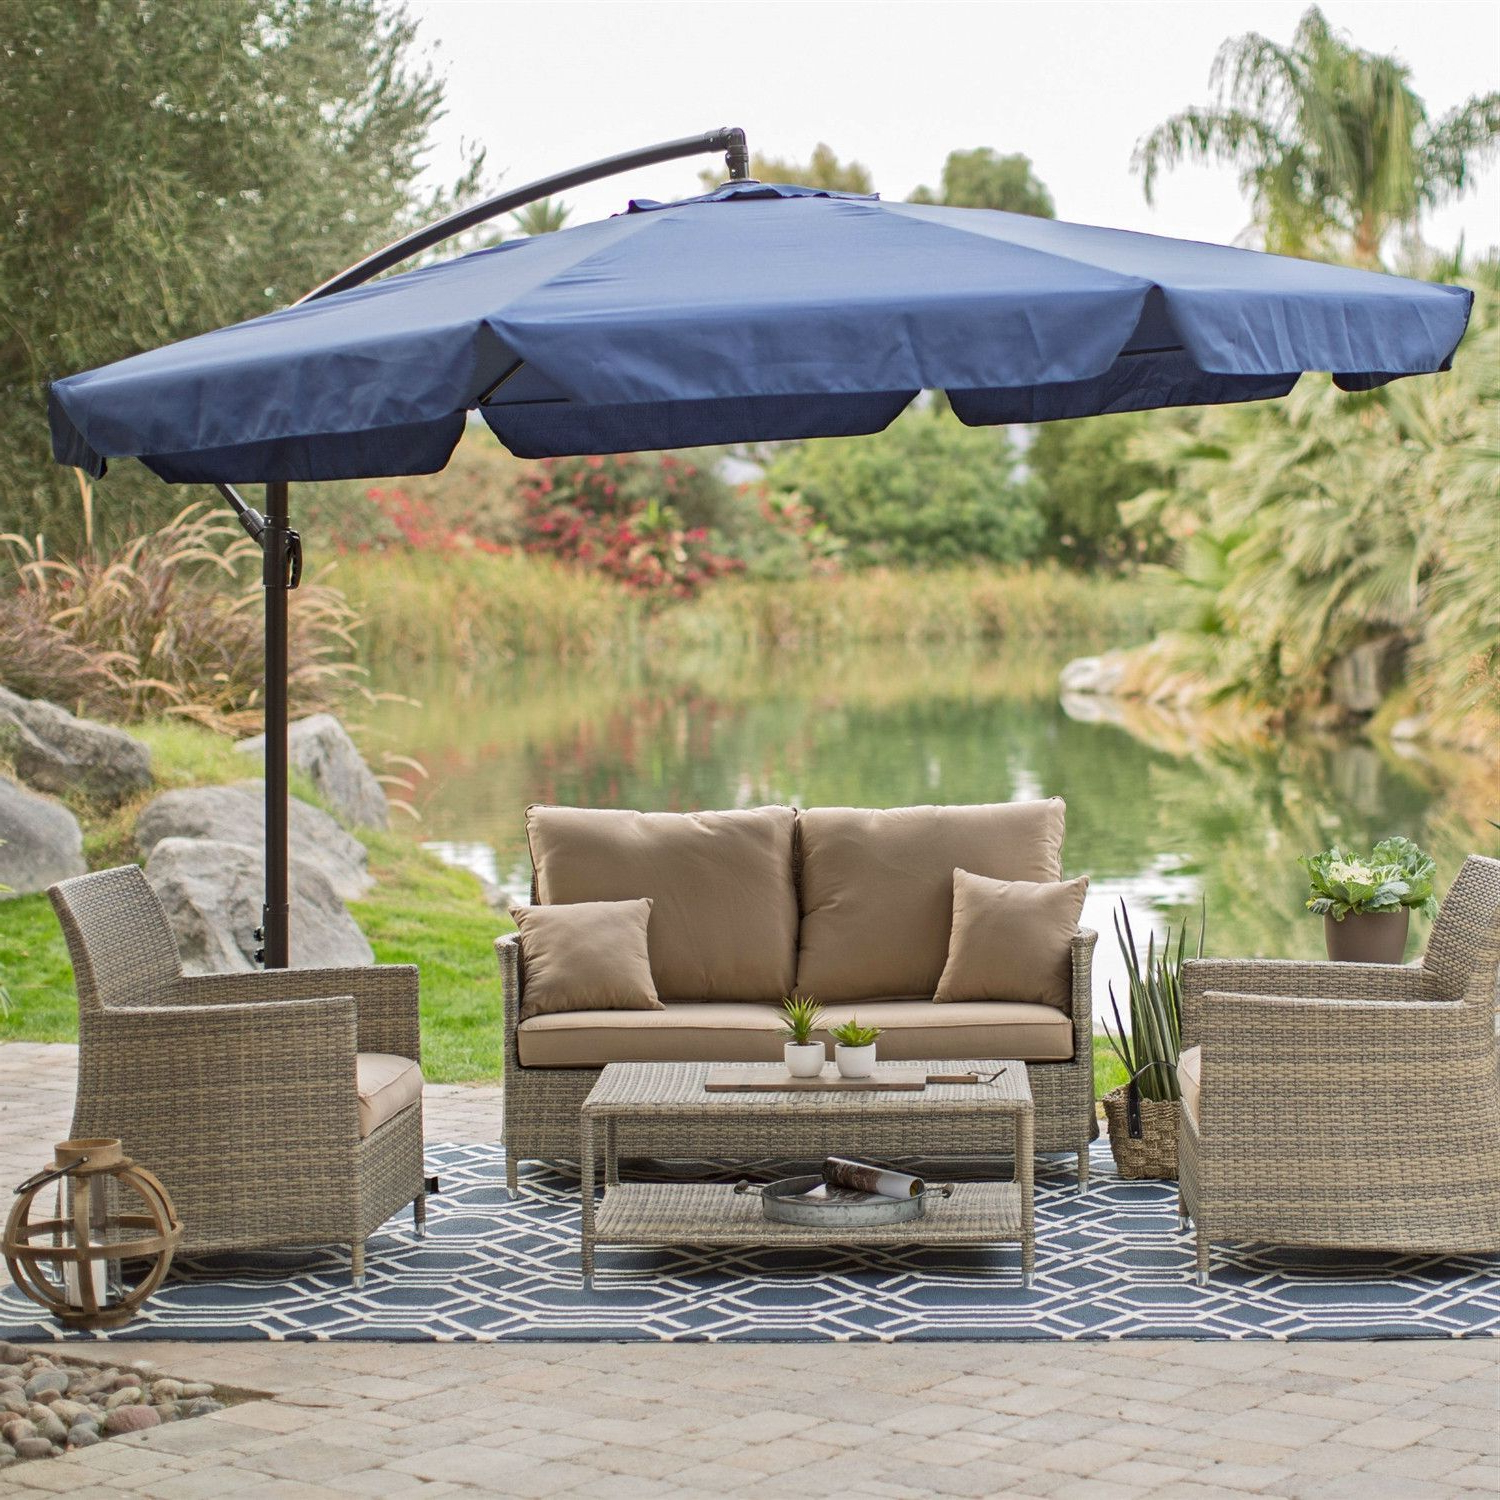 Trendy Havenside Home Newtok Mesh Reclining Patio Loungers Inside 11 Ft Offset Patio Umbrella In Blue With Base And Detachable (View 13 of 25)